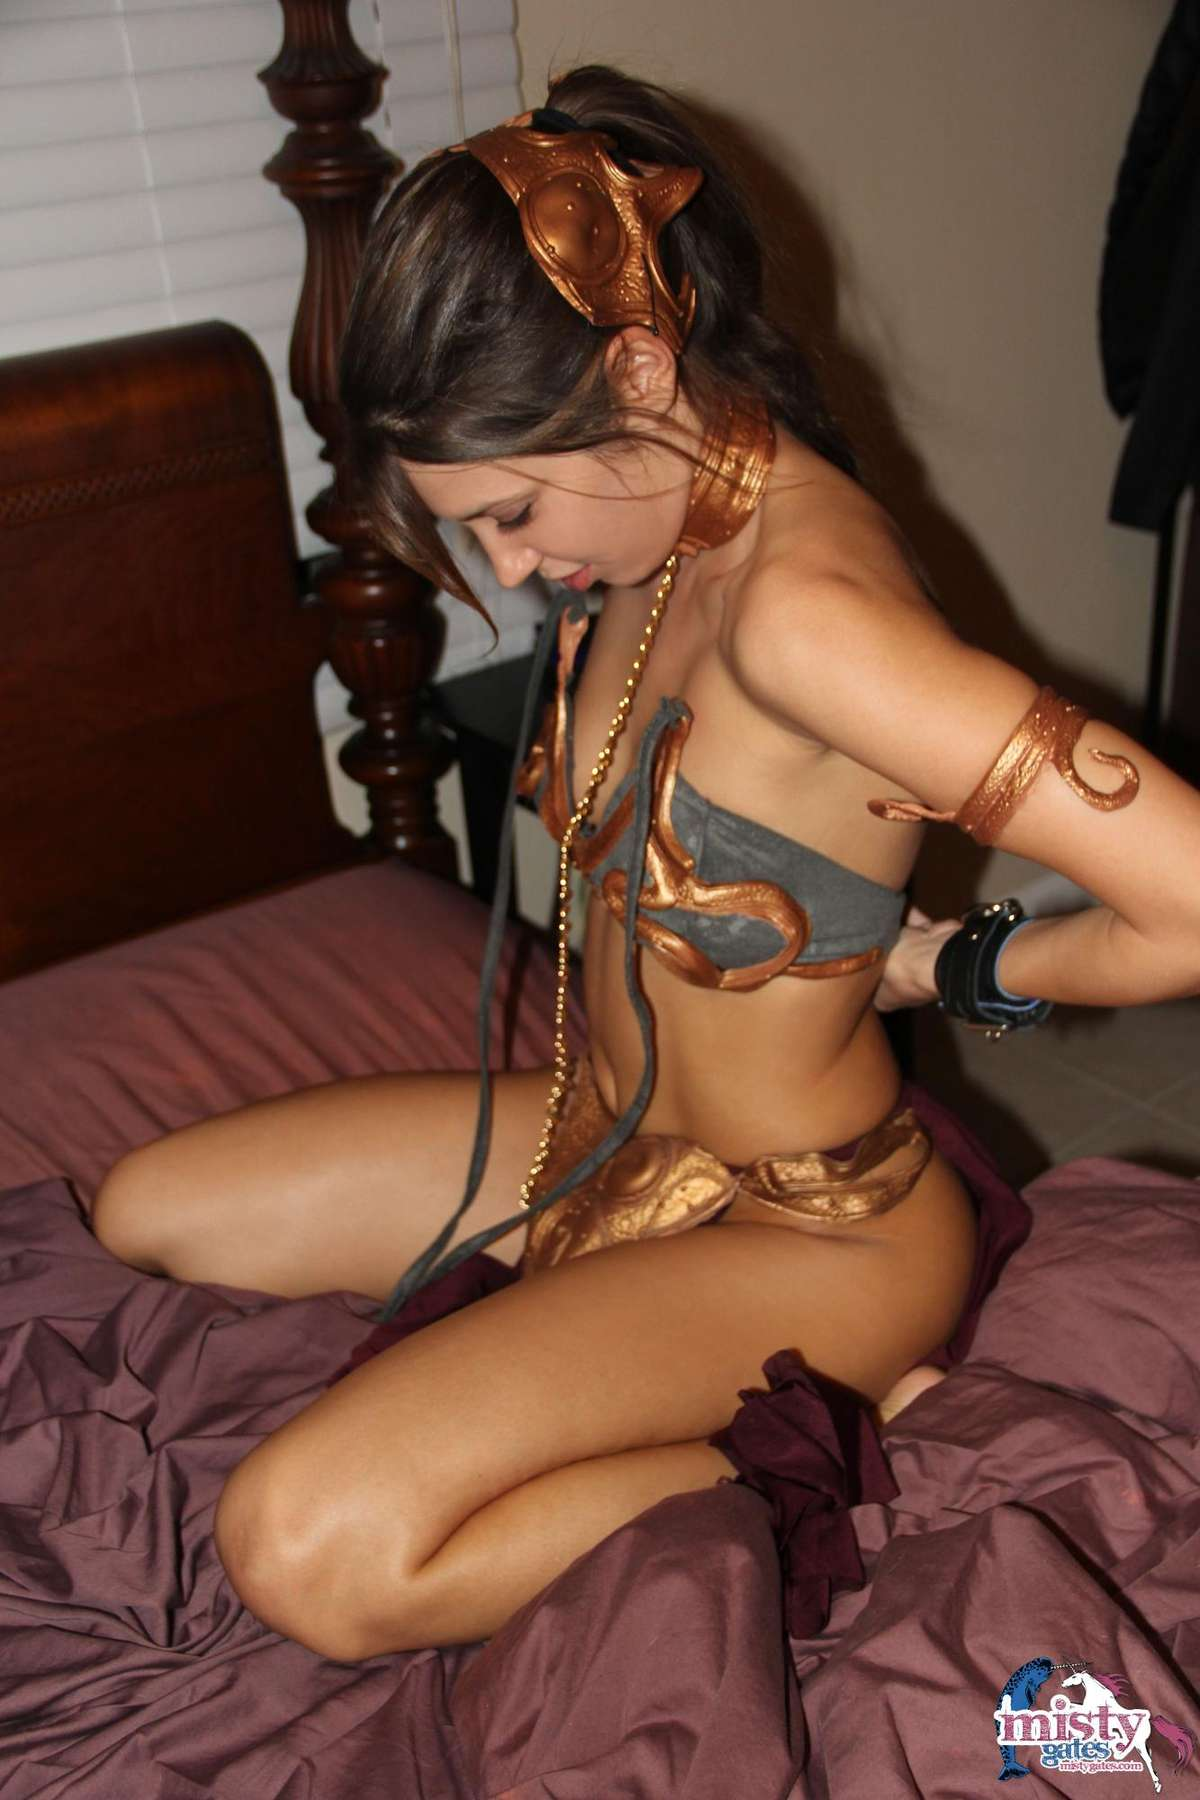 Star wars girl nude